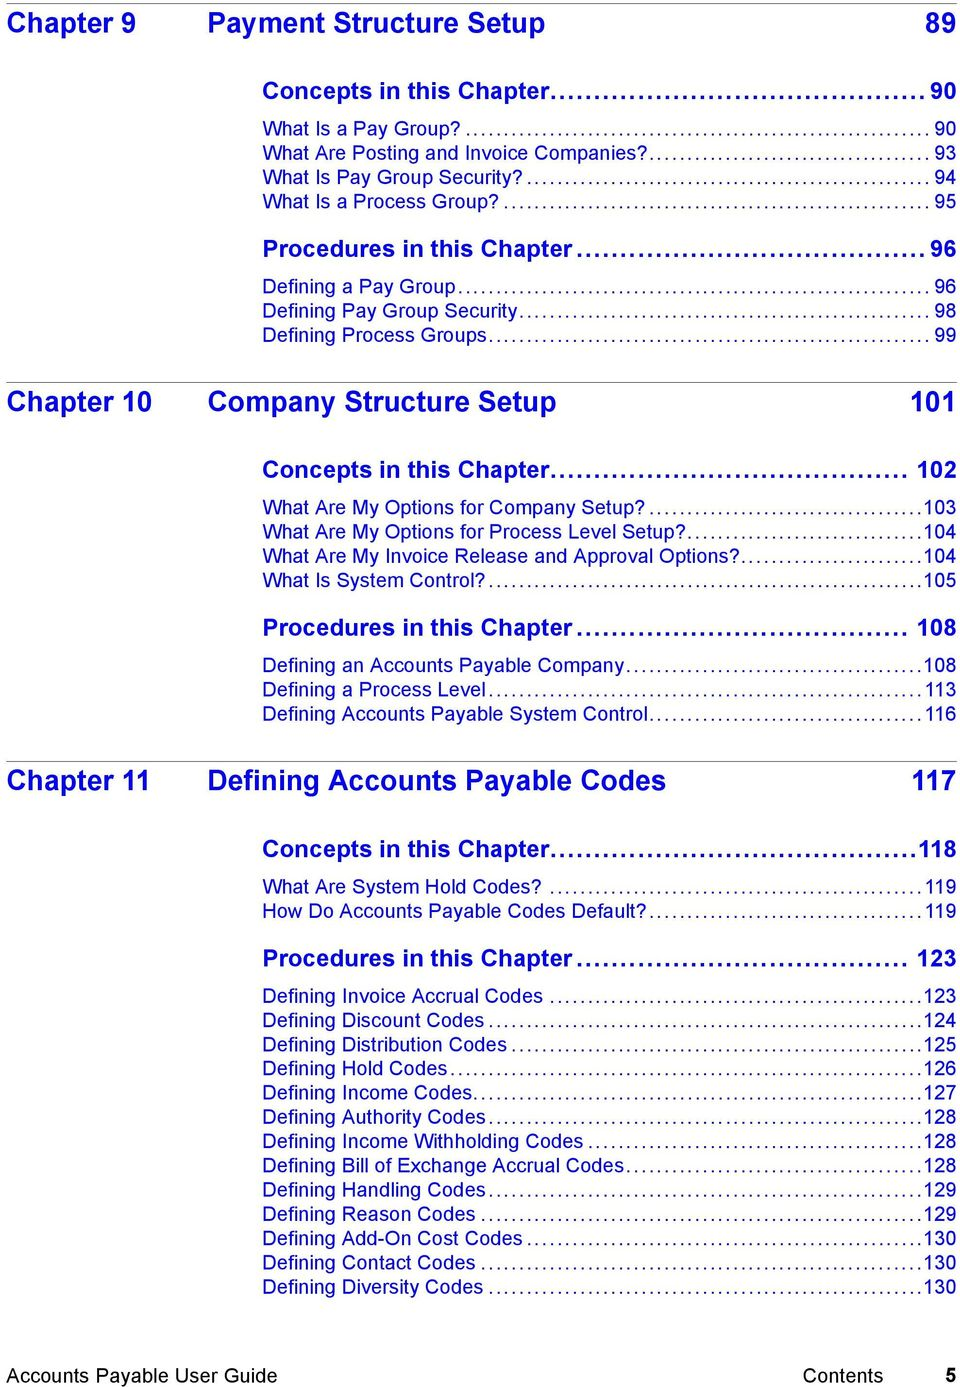 ... Accounts Payable User Guide Contents 5 .. 102 What Are My Options for  Company Setup?...103 What